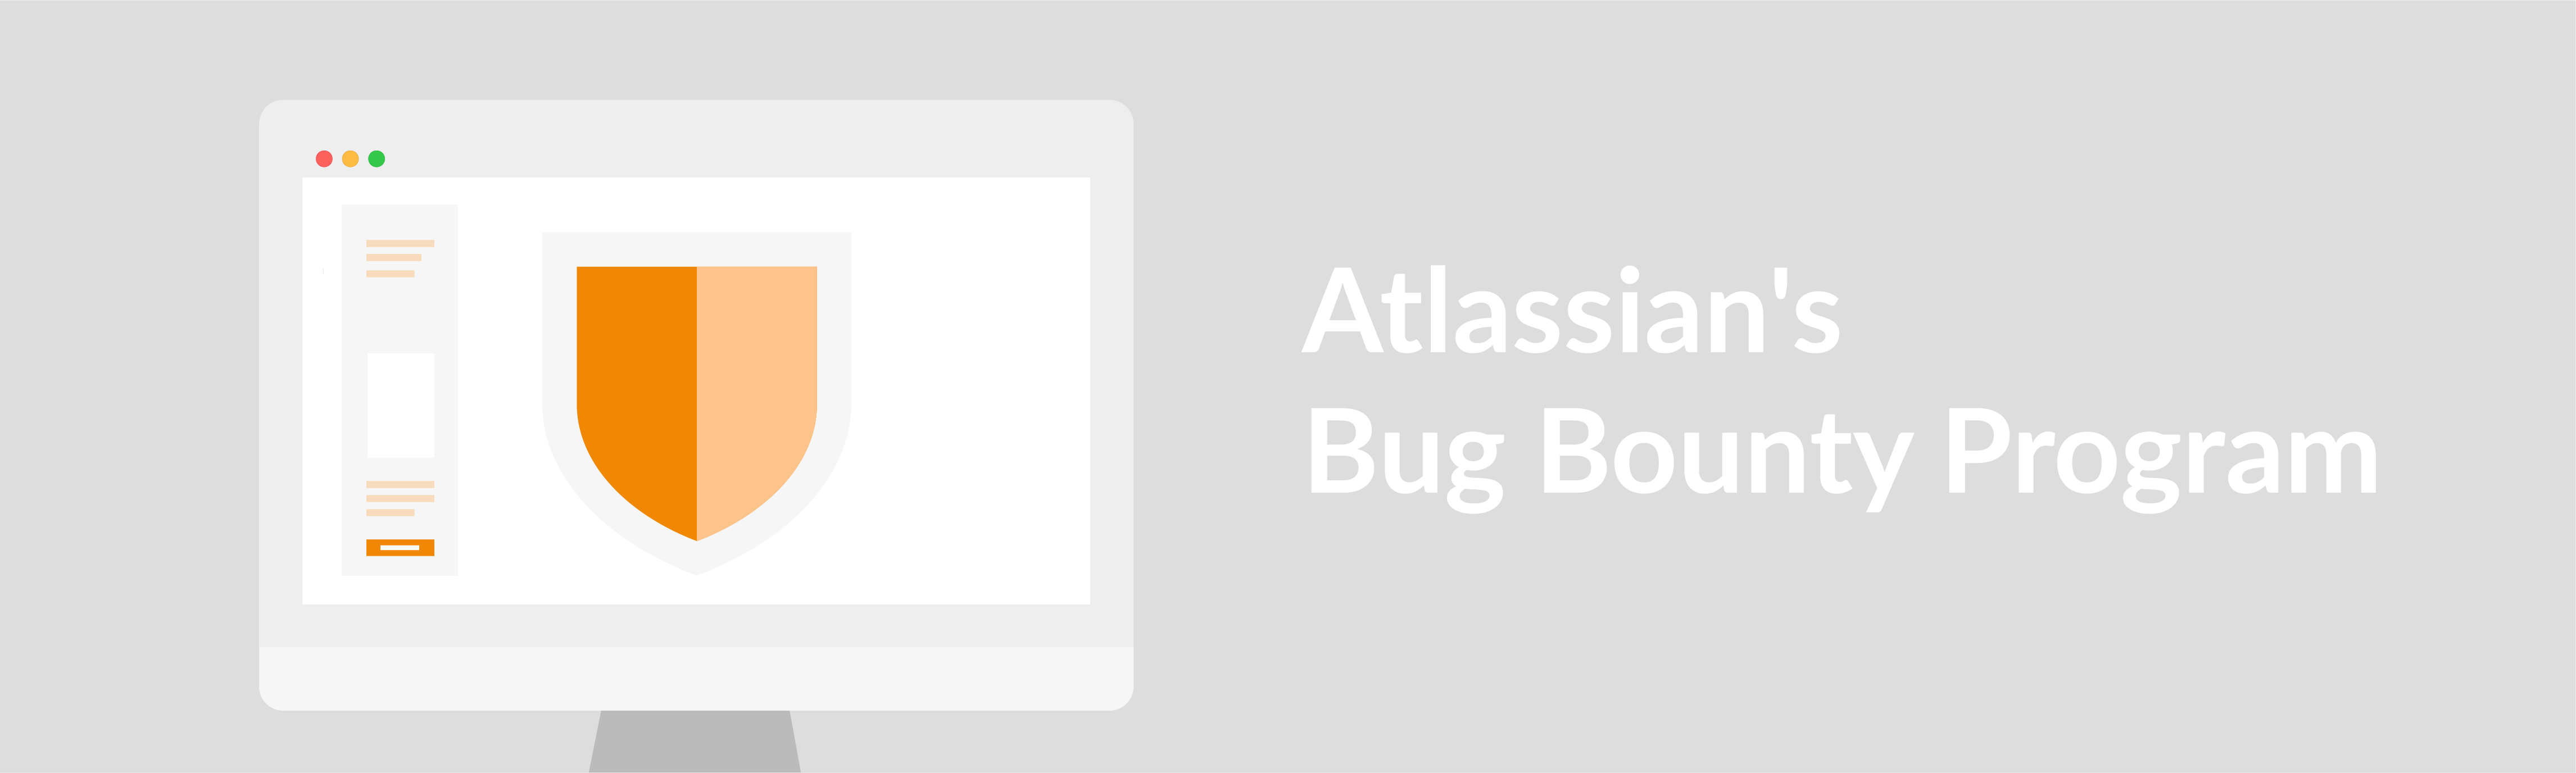 Atlassian's Bug Bounty Program